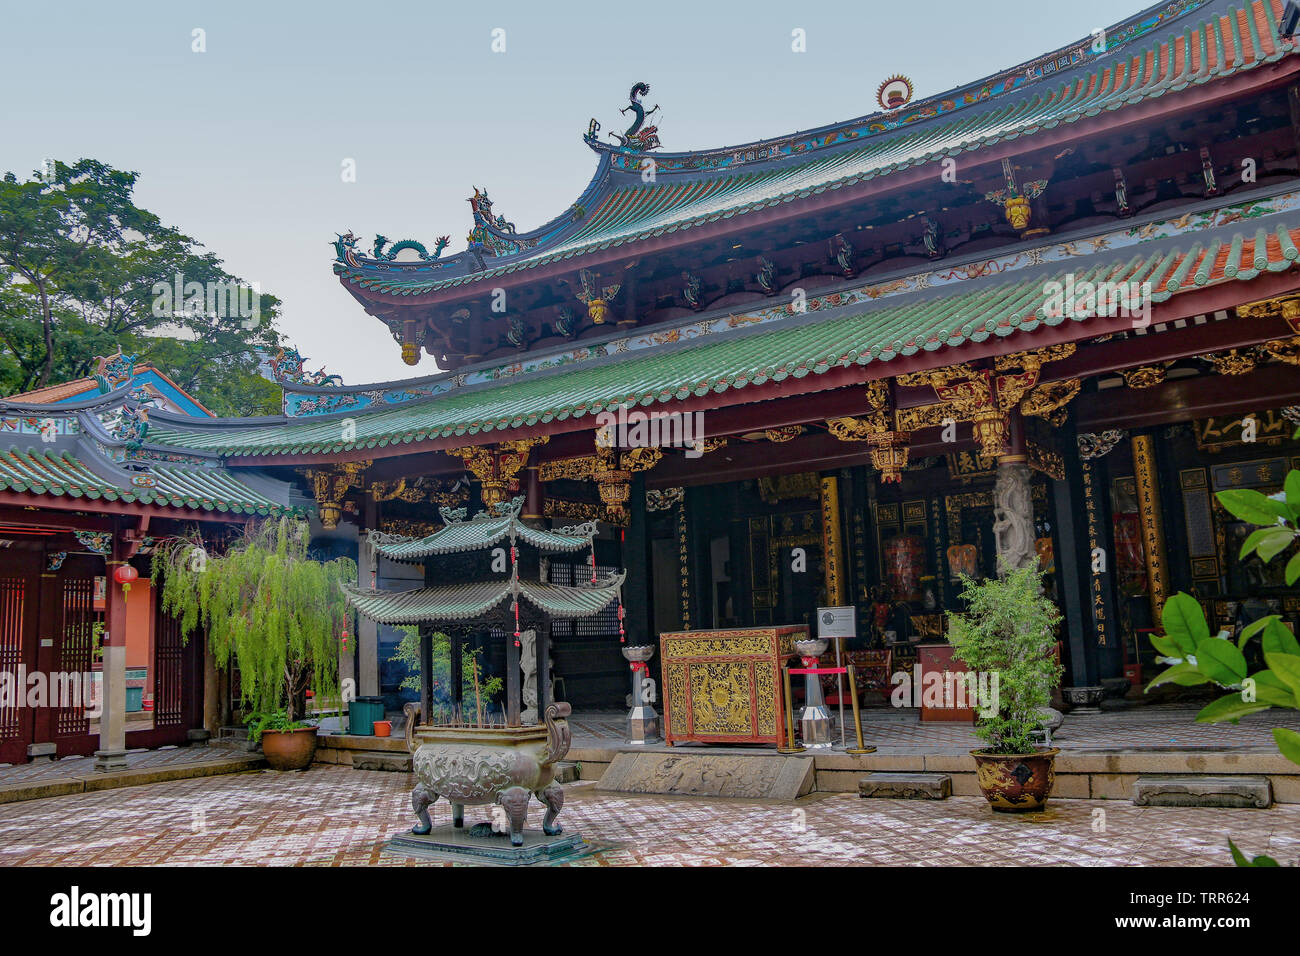 Ornate carvings & roof of the Thian Hock Keng Temple, or Temple of Heavenly Happiness, China town, Singapore, Asia - Stock Image